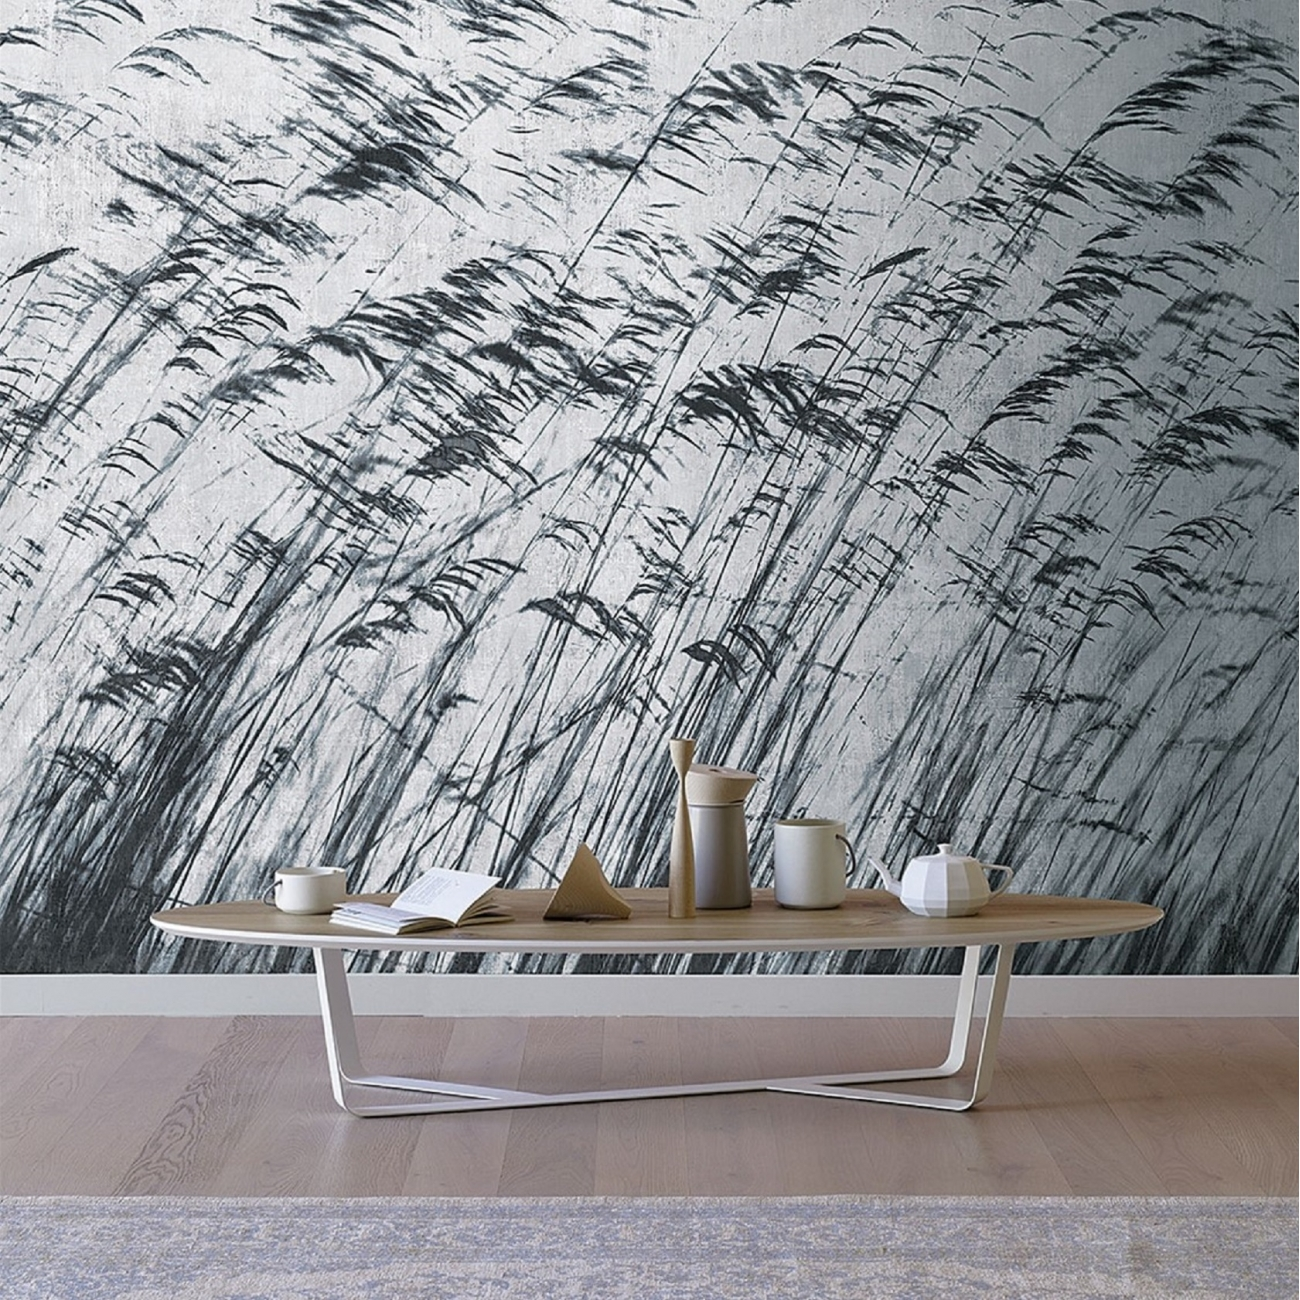 London Art Gone With The Wind Wallpaper Tattahome